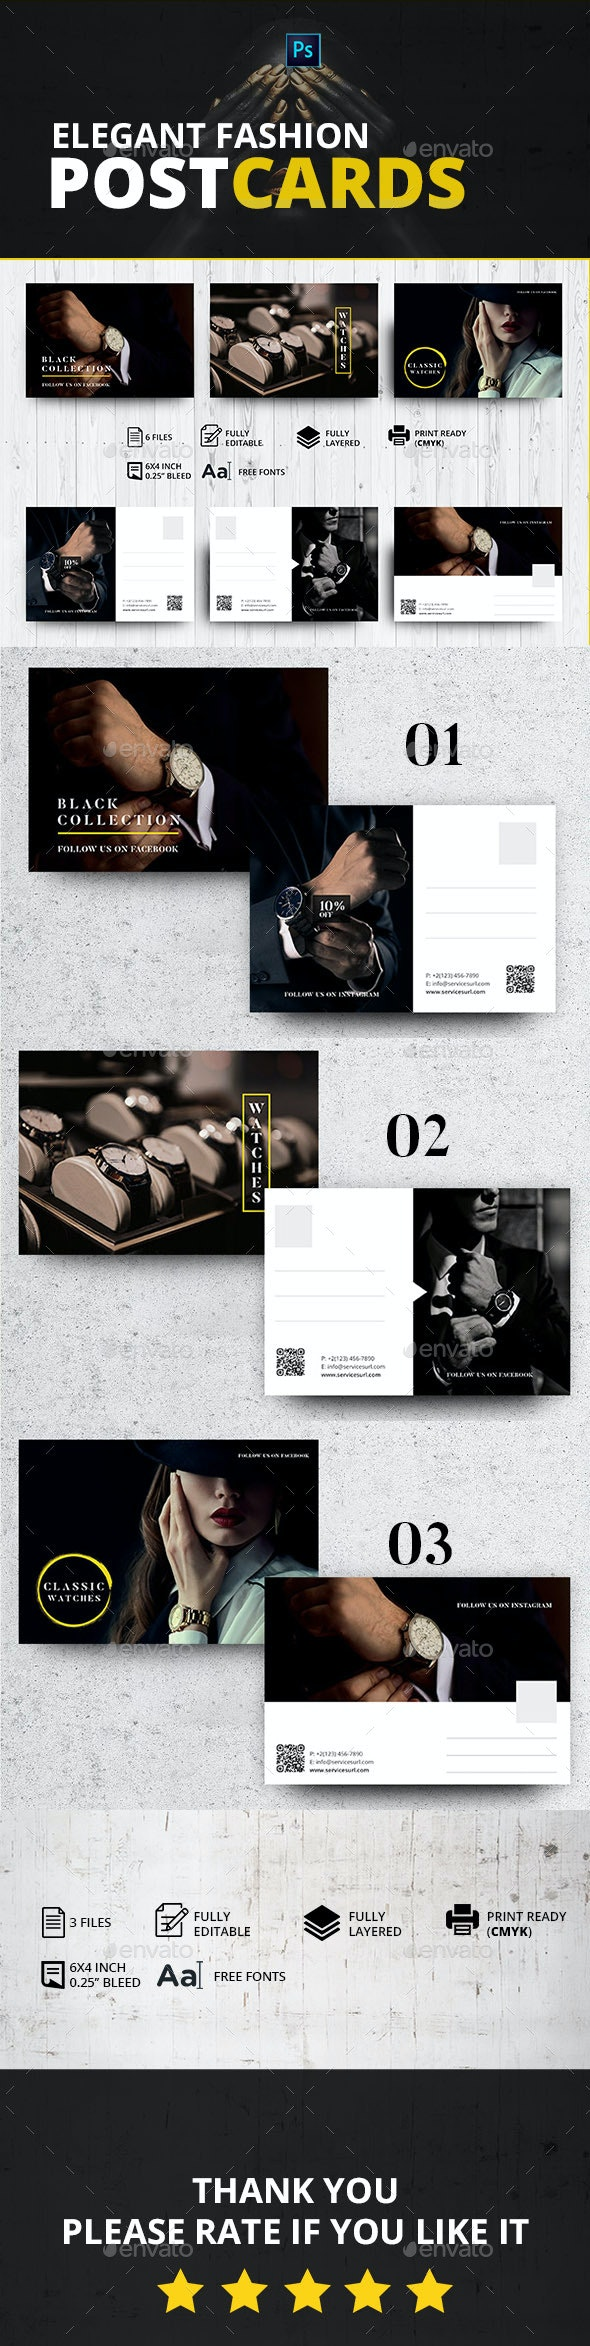 Elegant Fashion Postcards - Cards & Invites Print Templates